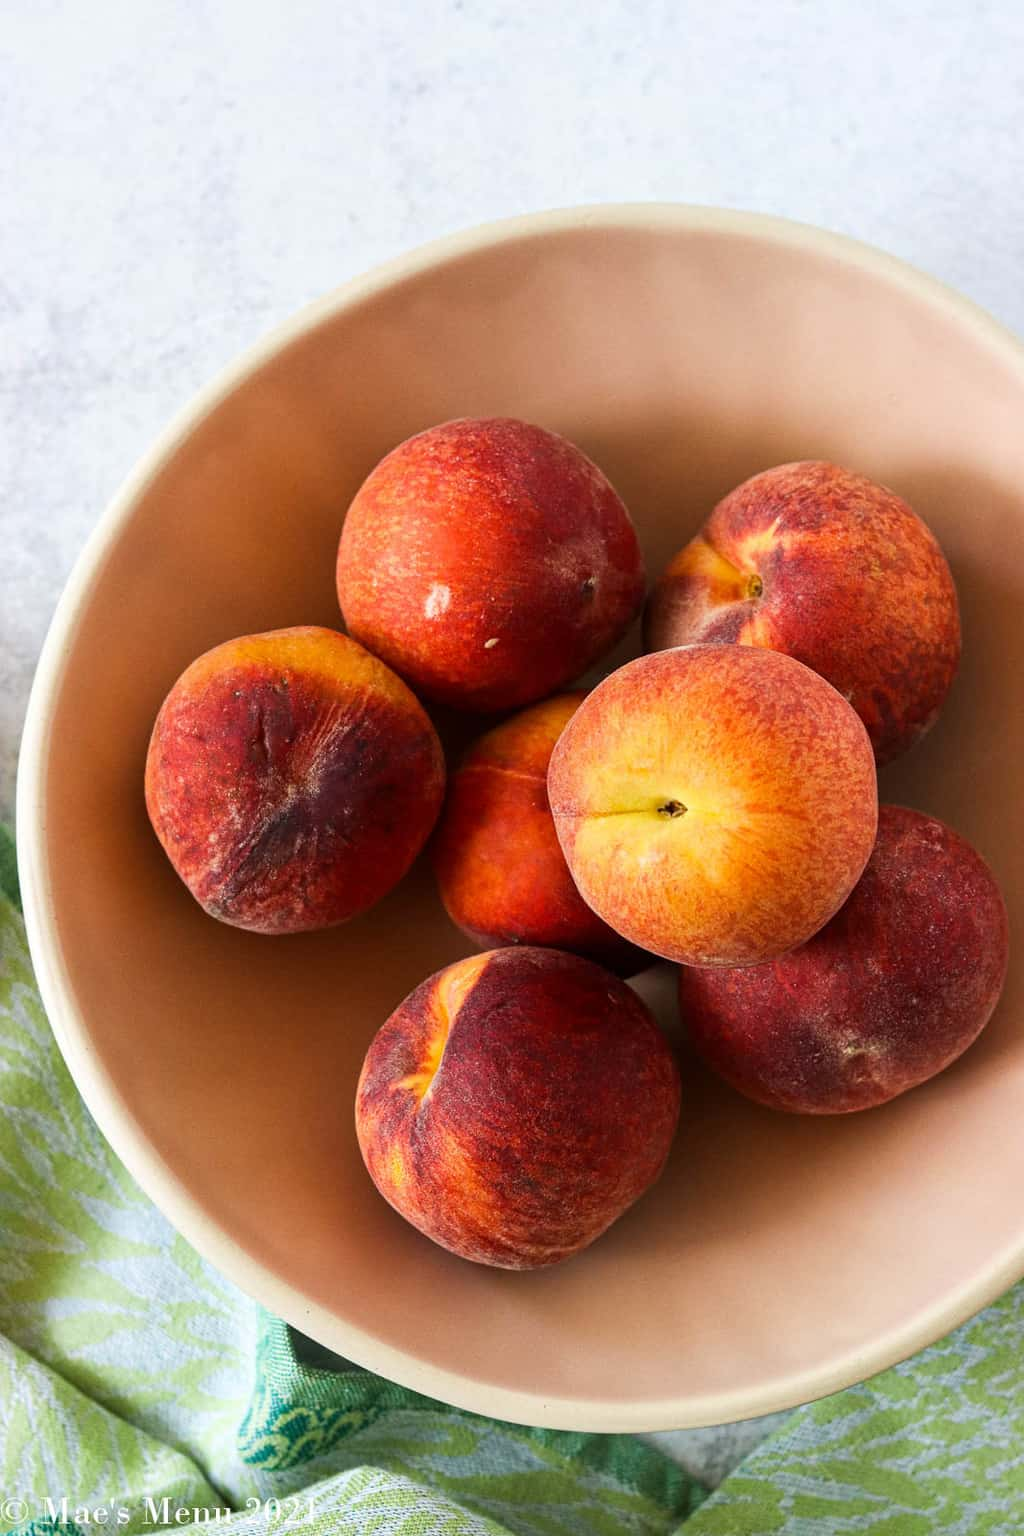 A light peach colored bowl of peaches with a blue towel in he background